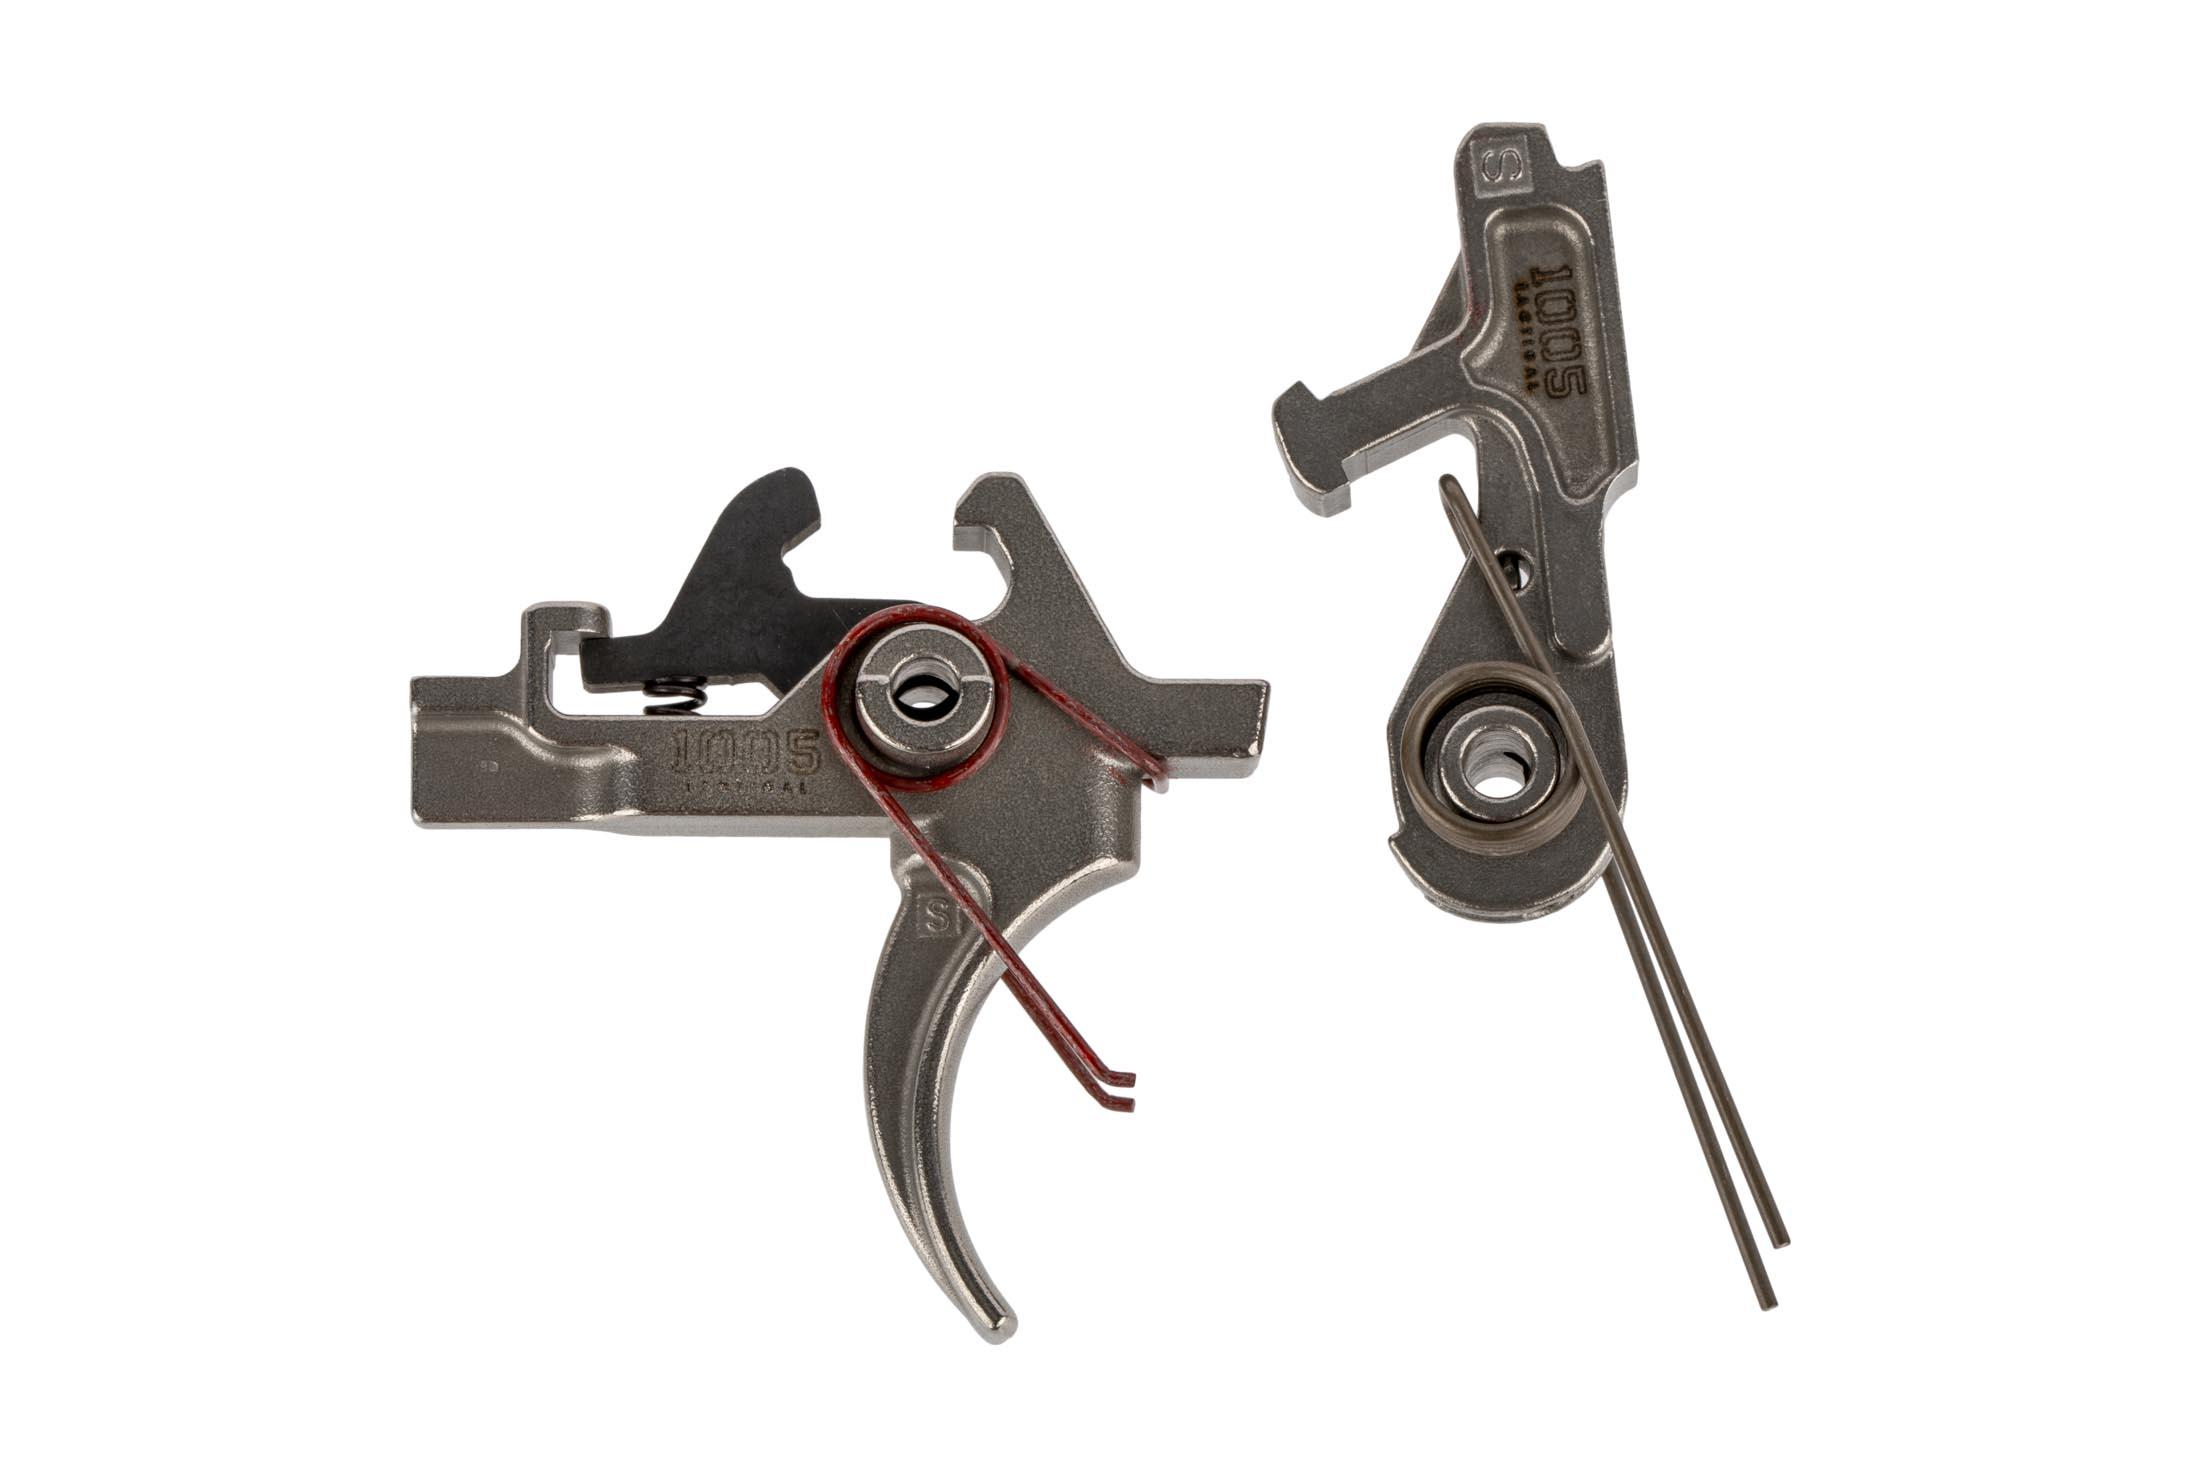 FM Products Nickel Boron match grade 2-stage AR-15 trigger is a smooth and reliable trigger with clean break